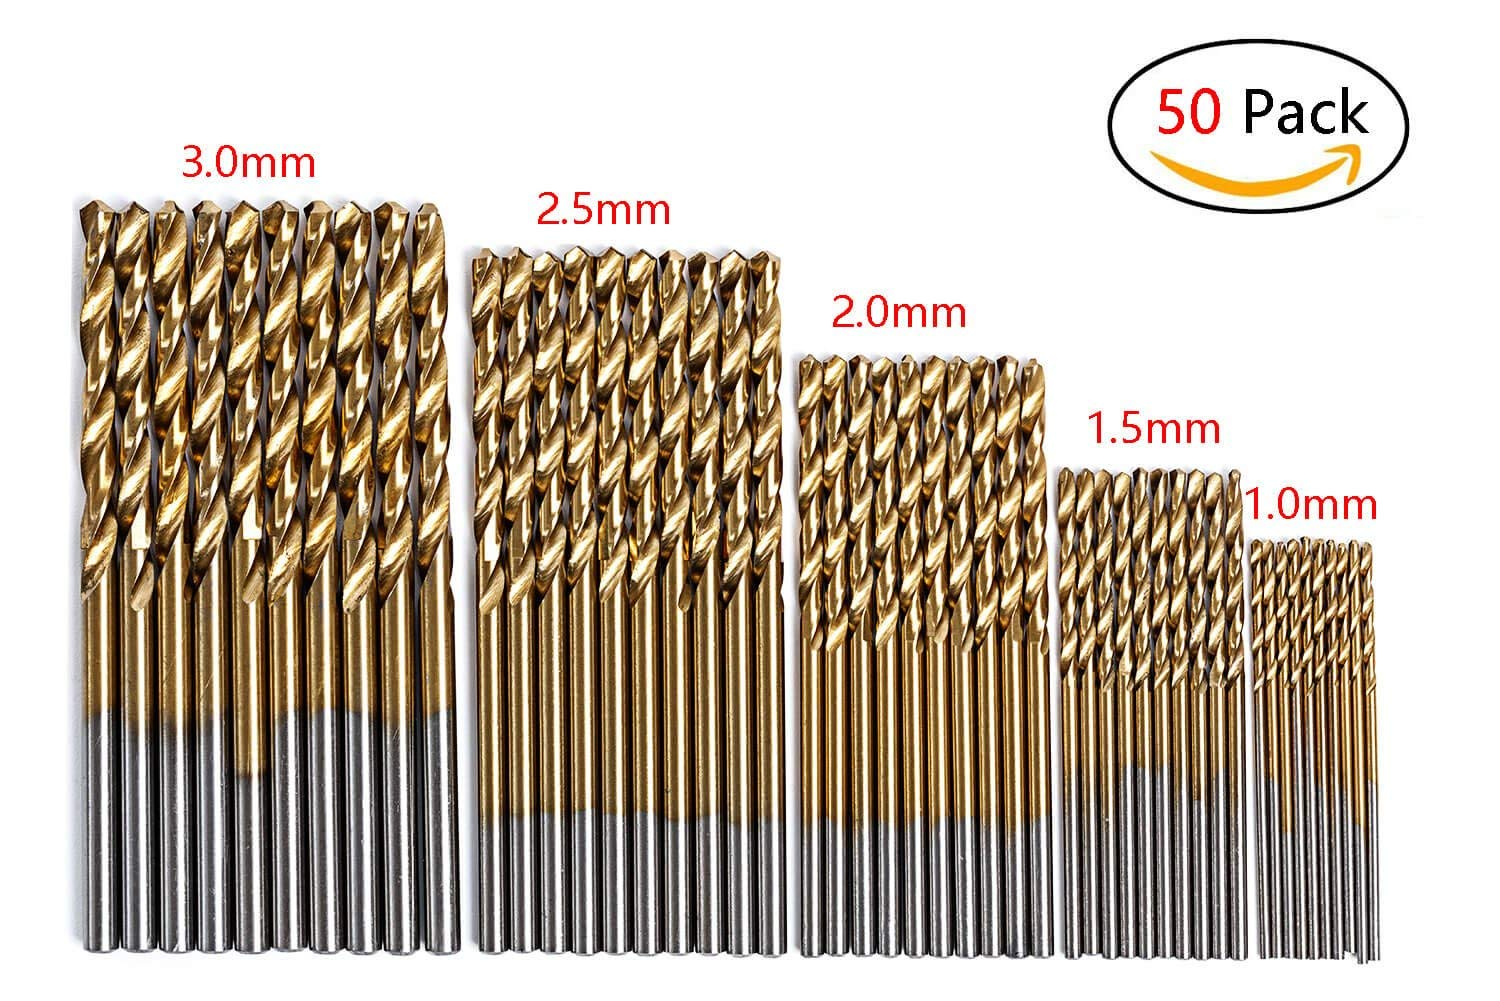 50Pcs High Speed Steel Twist Drill Bit Set - Micro Precision 1/1.5/2/2.5/3mm 5 Sizes Titanium Coated Split Point Boring Bit Tools for Wood/Plastic/ Soft Metal by NIDAYE